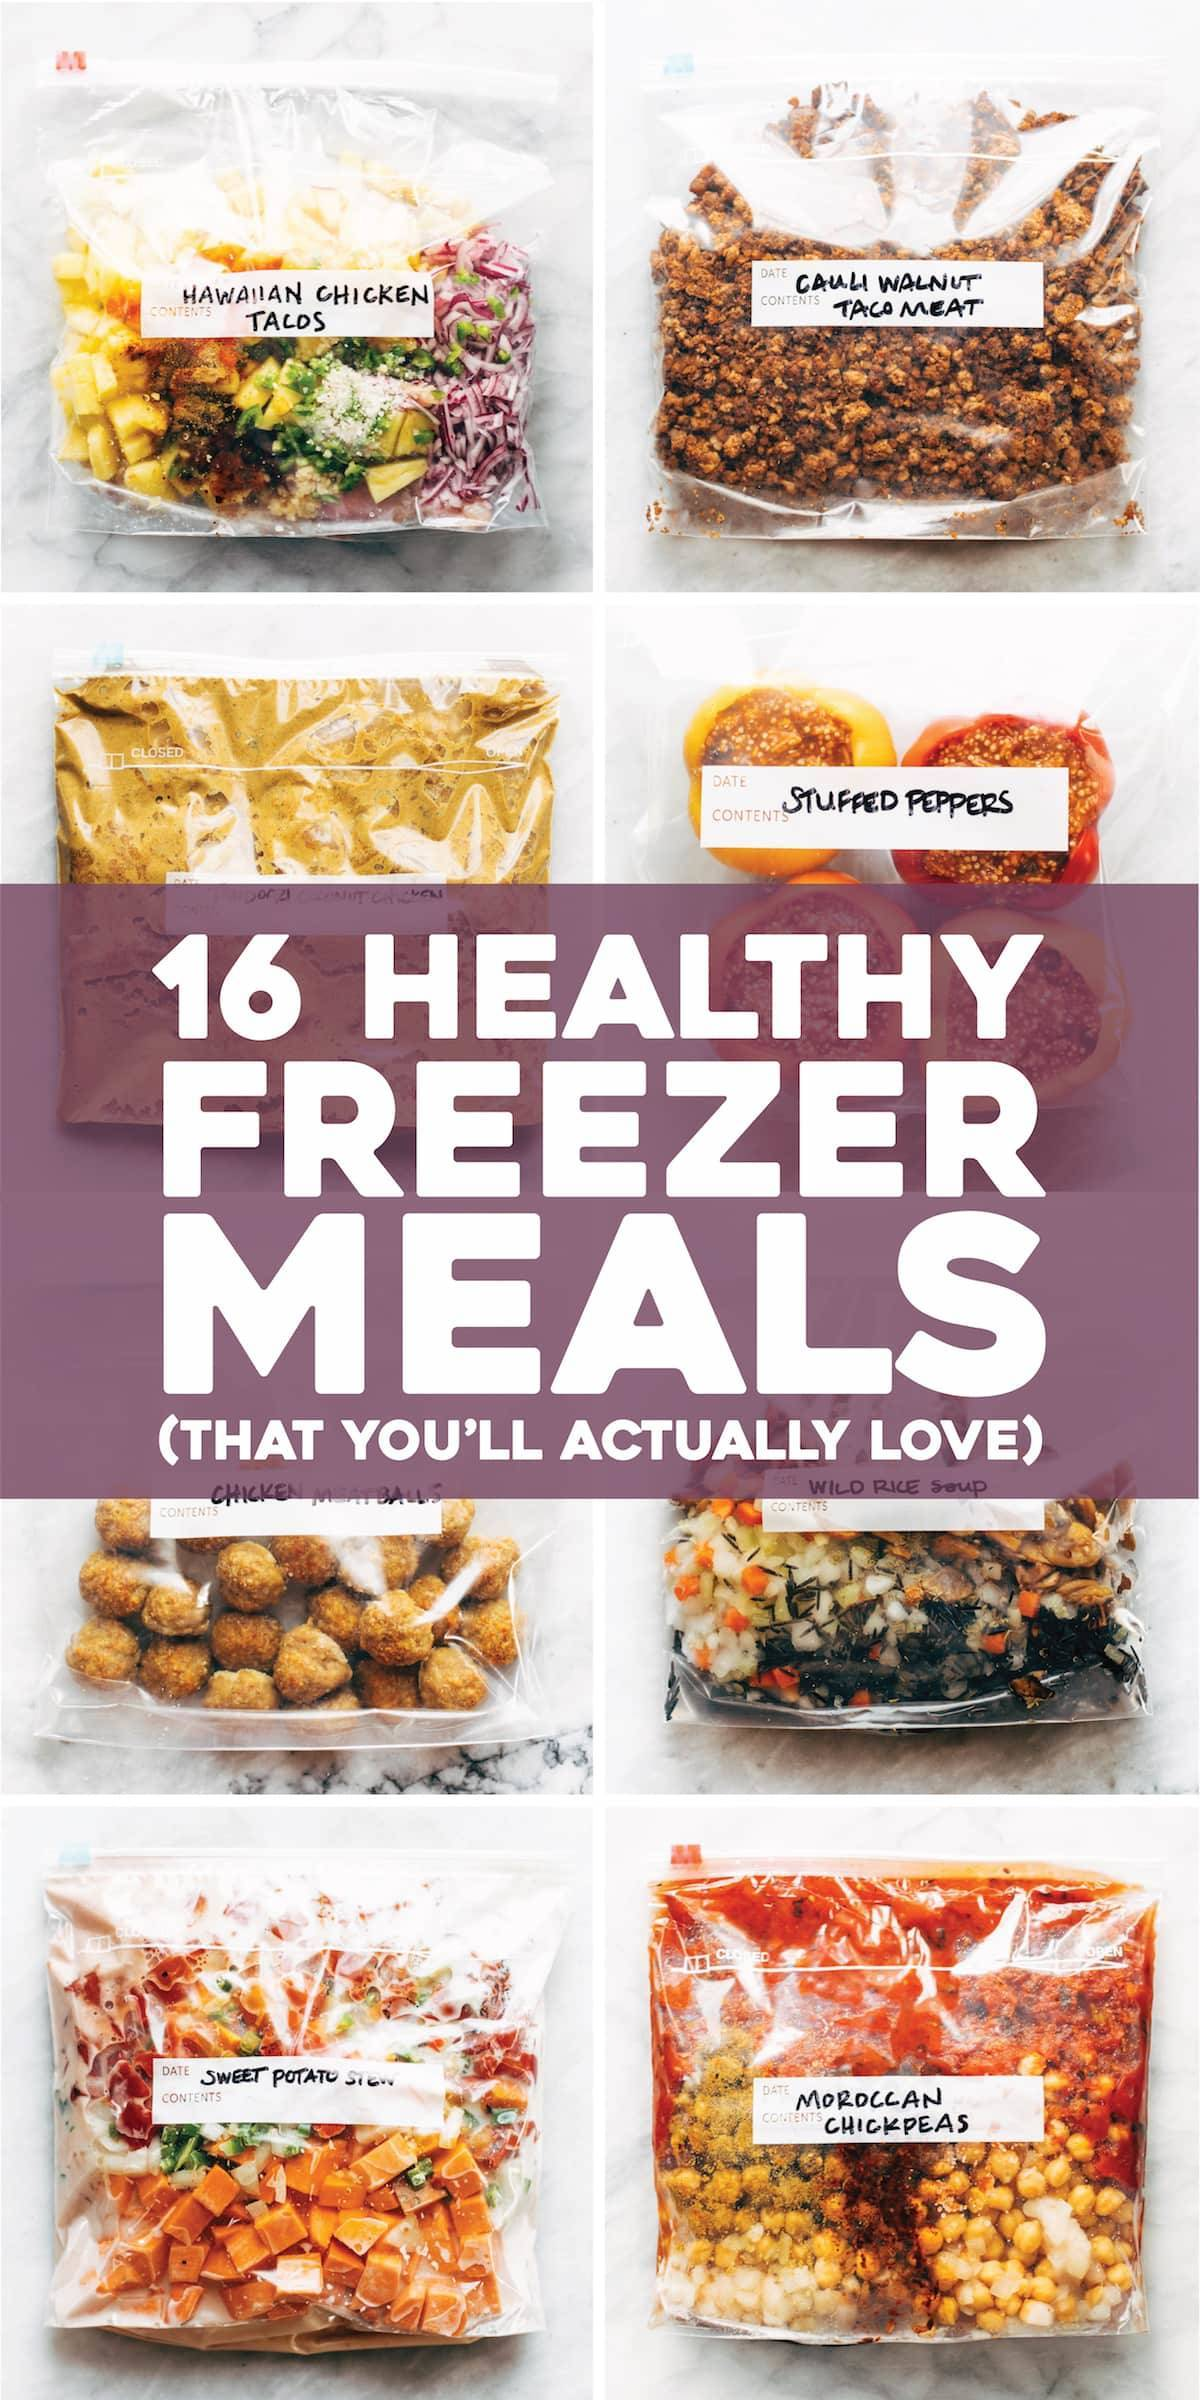 photo relating to Eat More Chicken Printable Sign referred to as 16 Balanced Freezer Food items (That Youll Pretty much Get pleasure from) - Pinch